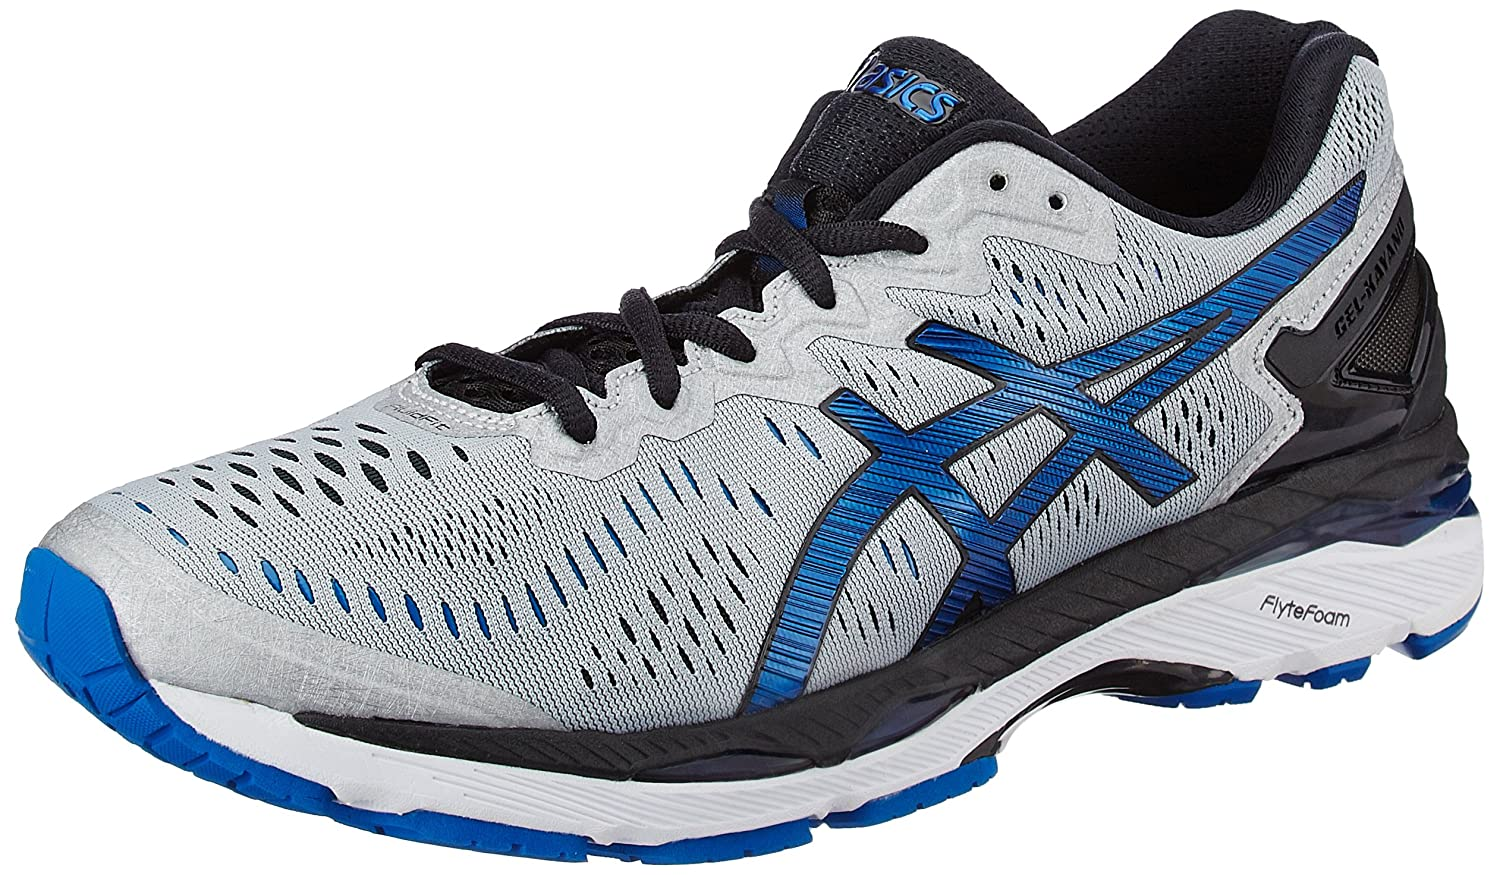 ASICS Men's Gel-Kayano 23 Running Shoes: Buy Online at Low Prices in India  - Amazon.in